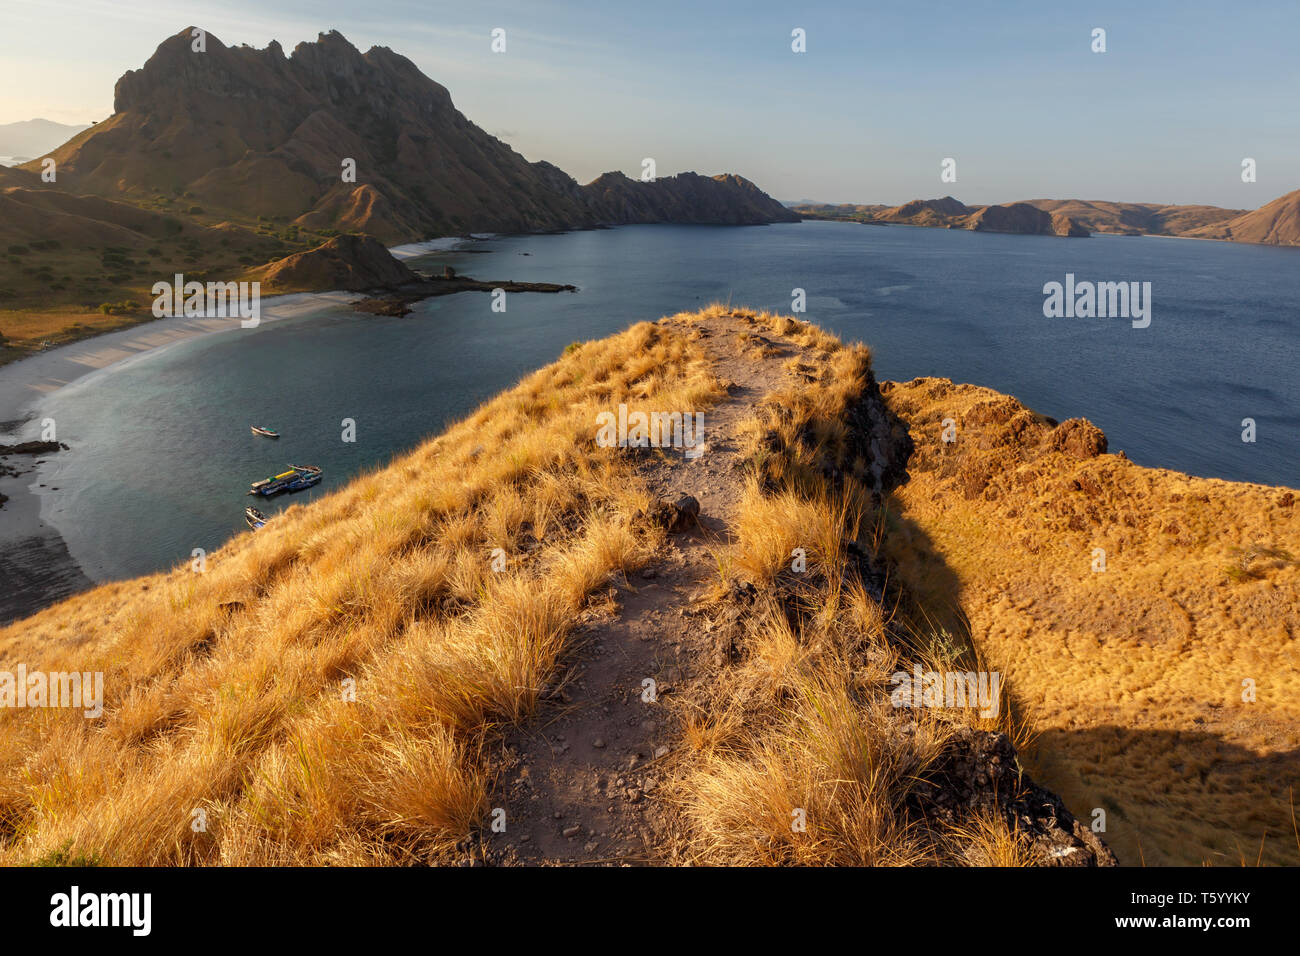 Sunset from hilltop on mountains in Komodo national park - Stock Image